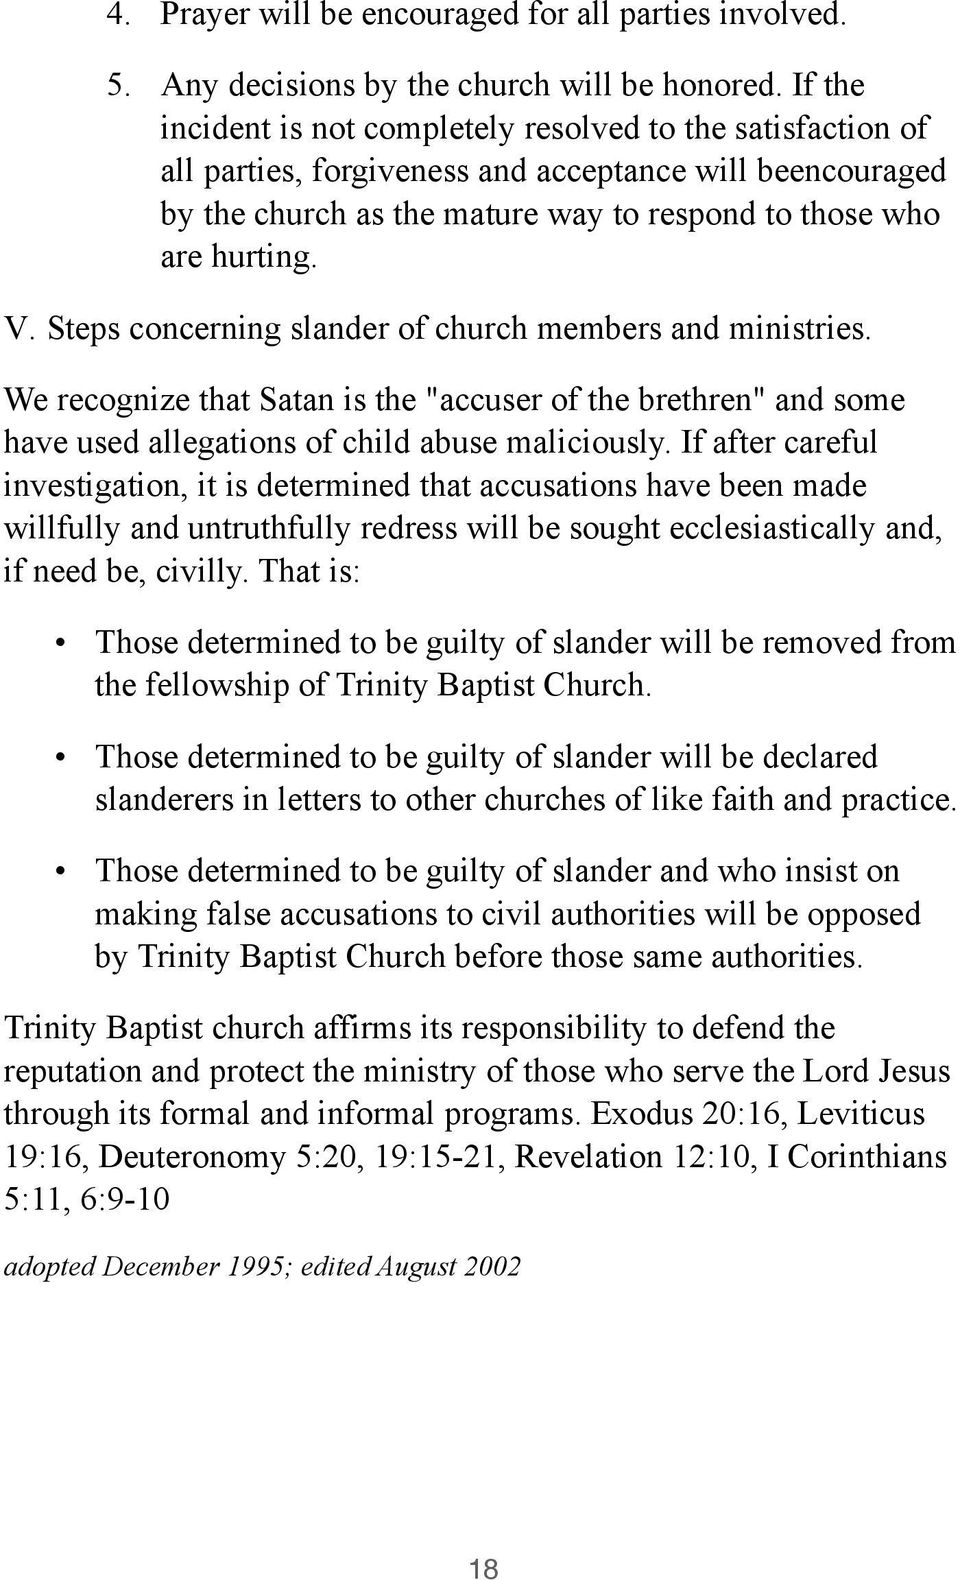 "Steps concerning slander of church members and ministries. We recognize that Satan is the ""accuser of the brethren"" and some have used allegations of child abuse maliciously."